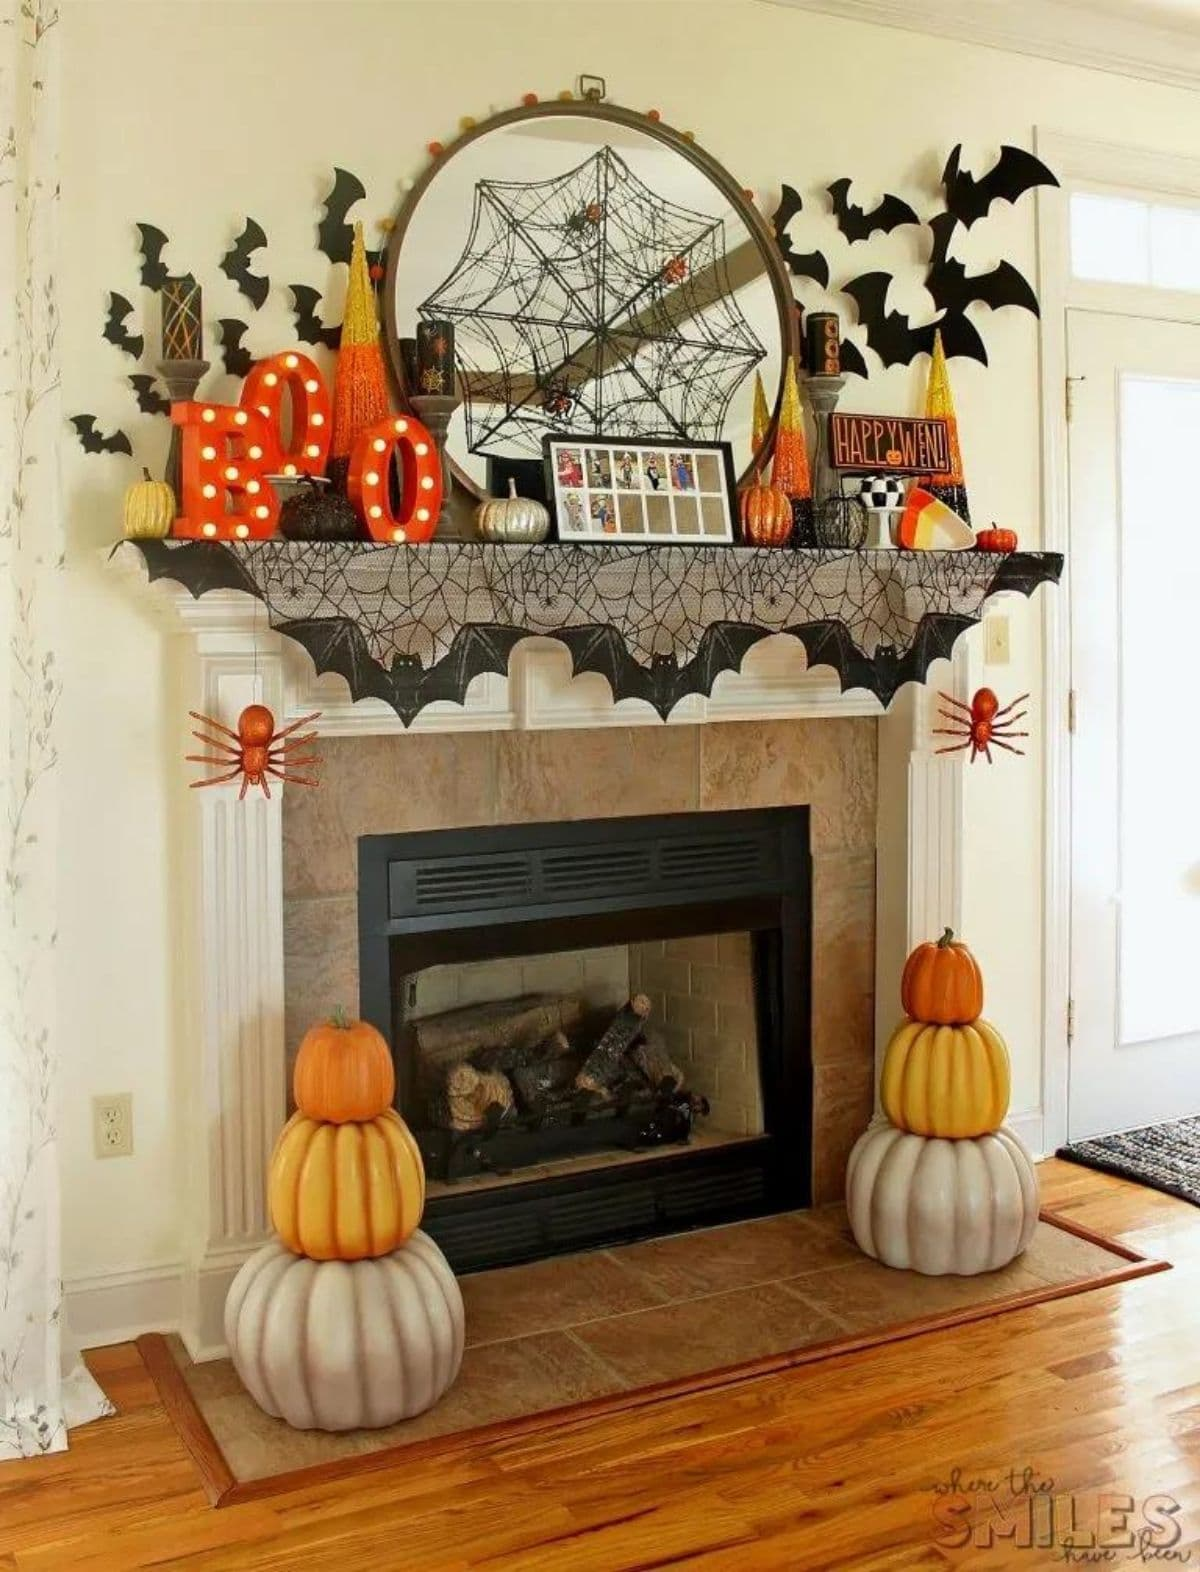 mantel with colorful pumpkins, BOO letters, bats, and spiderweb